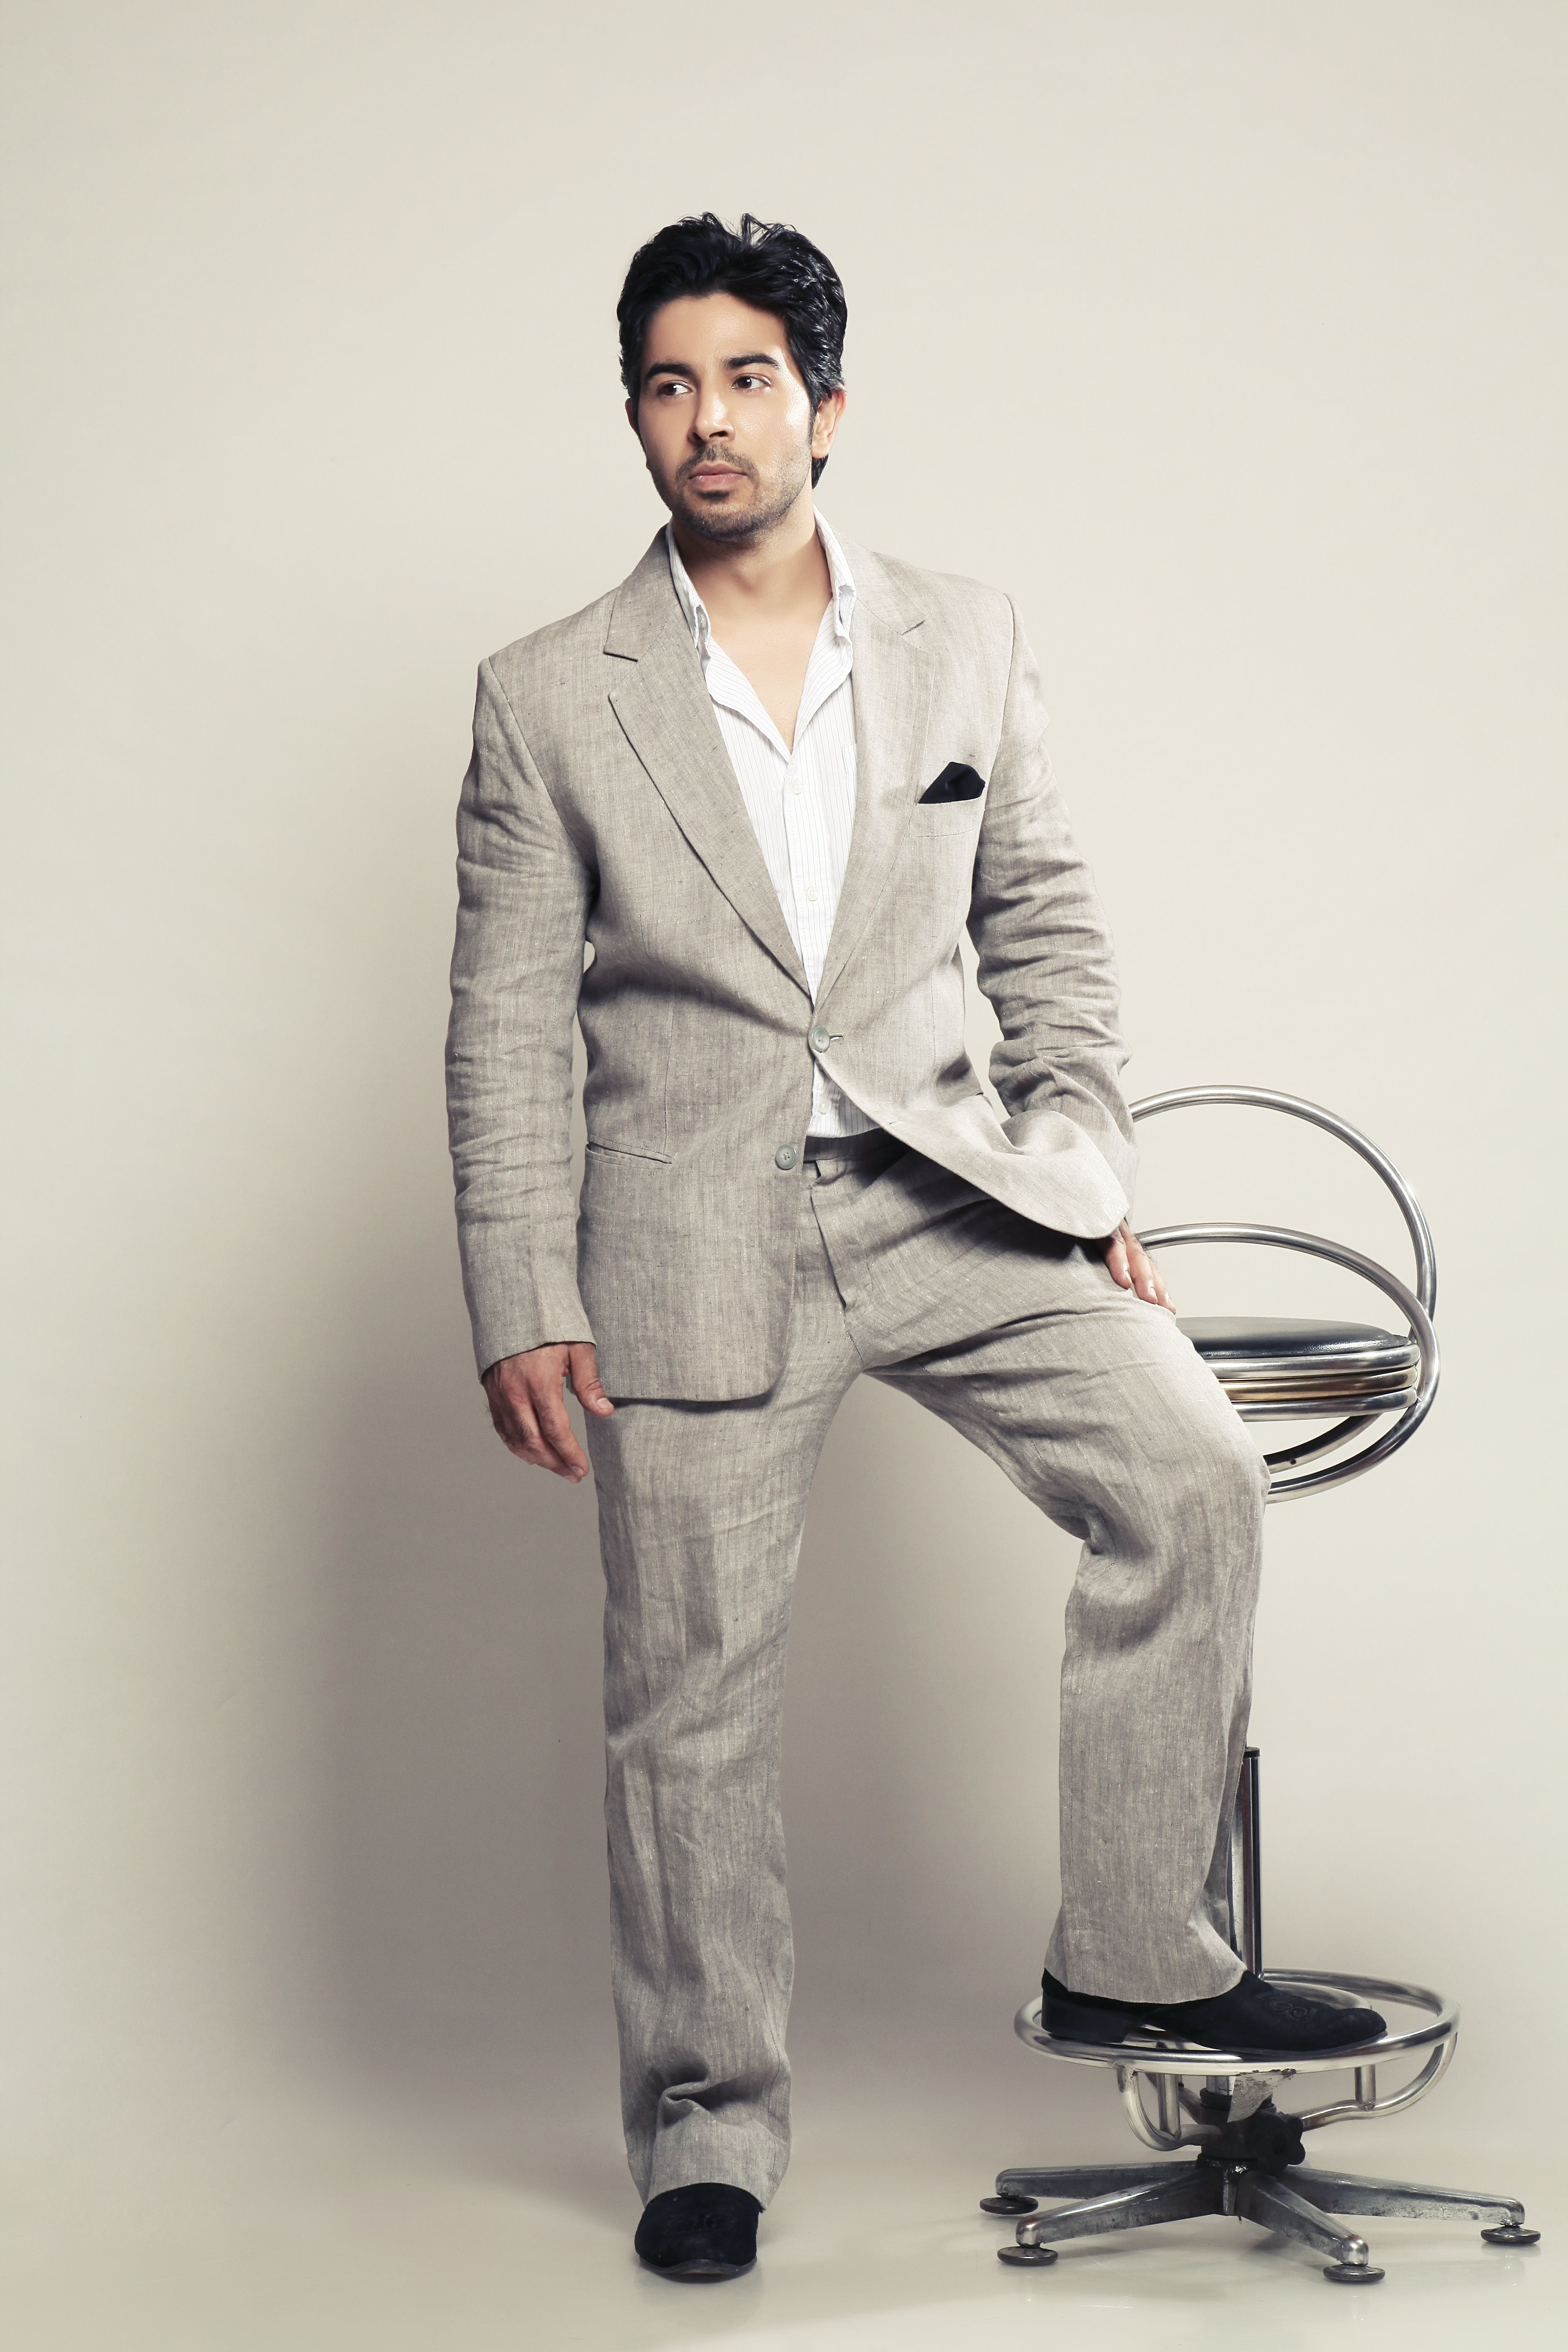 Free stock photo of man in grey suit, man resting his foot on a chair